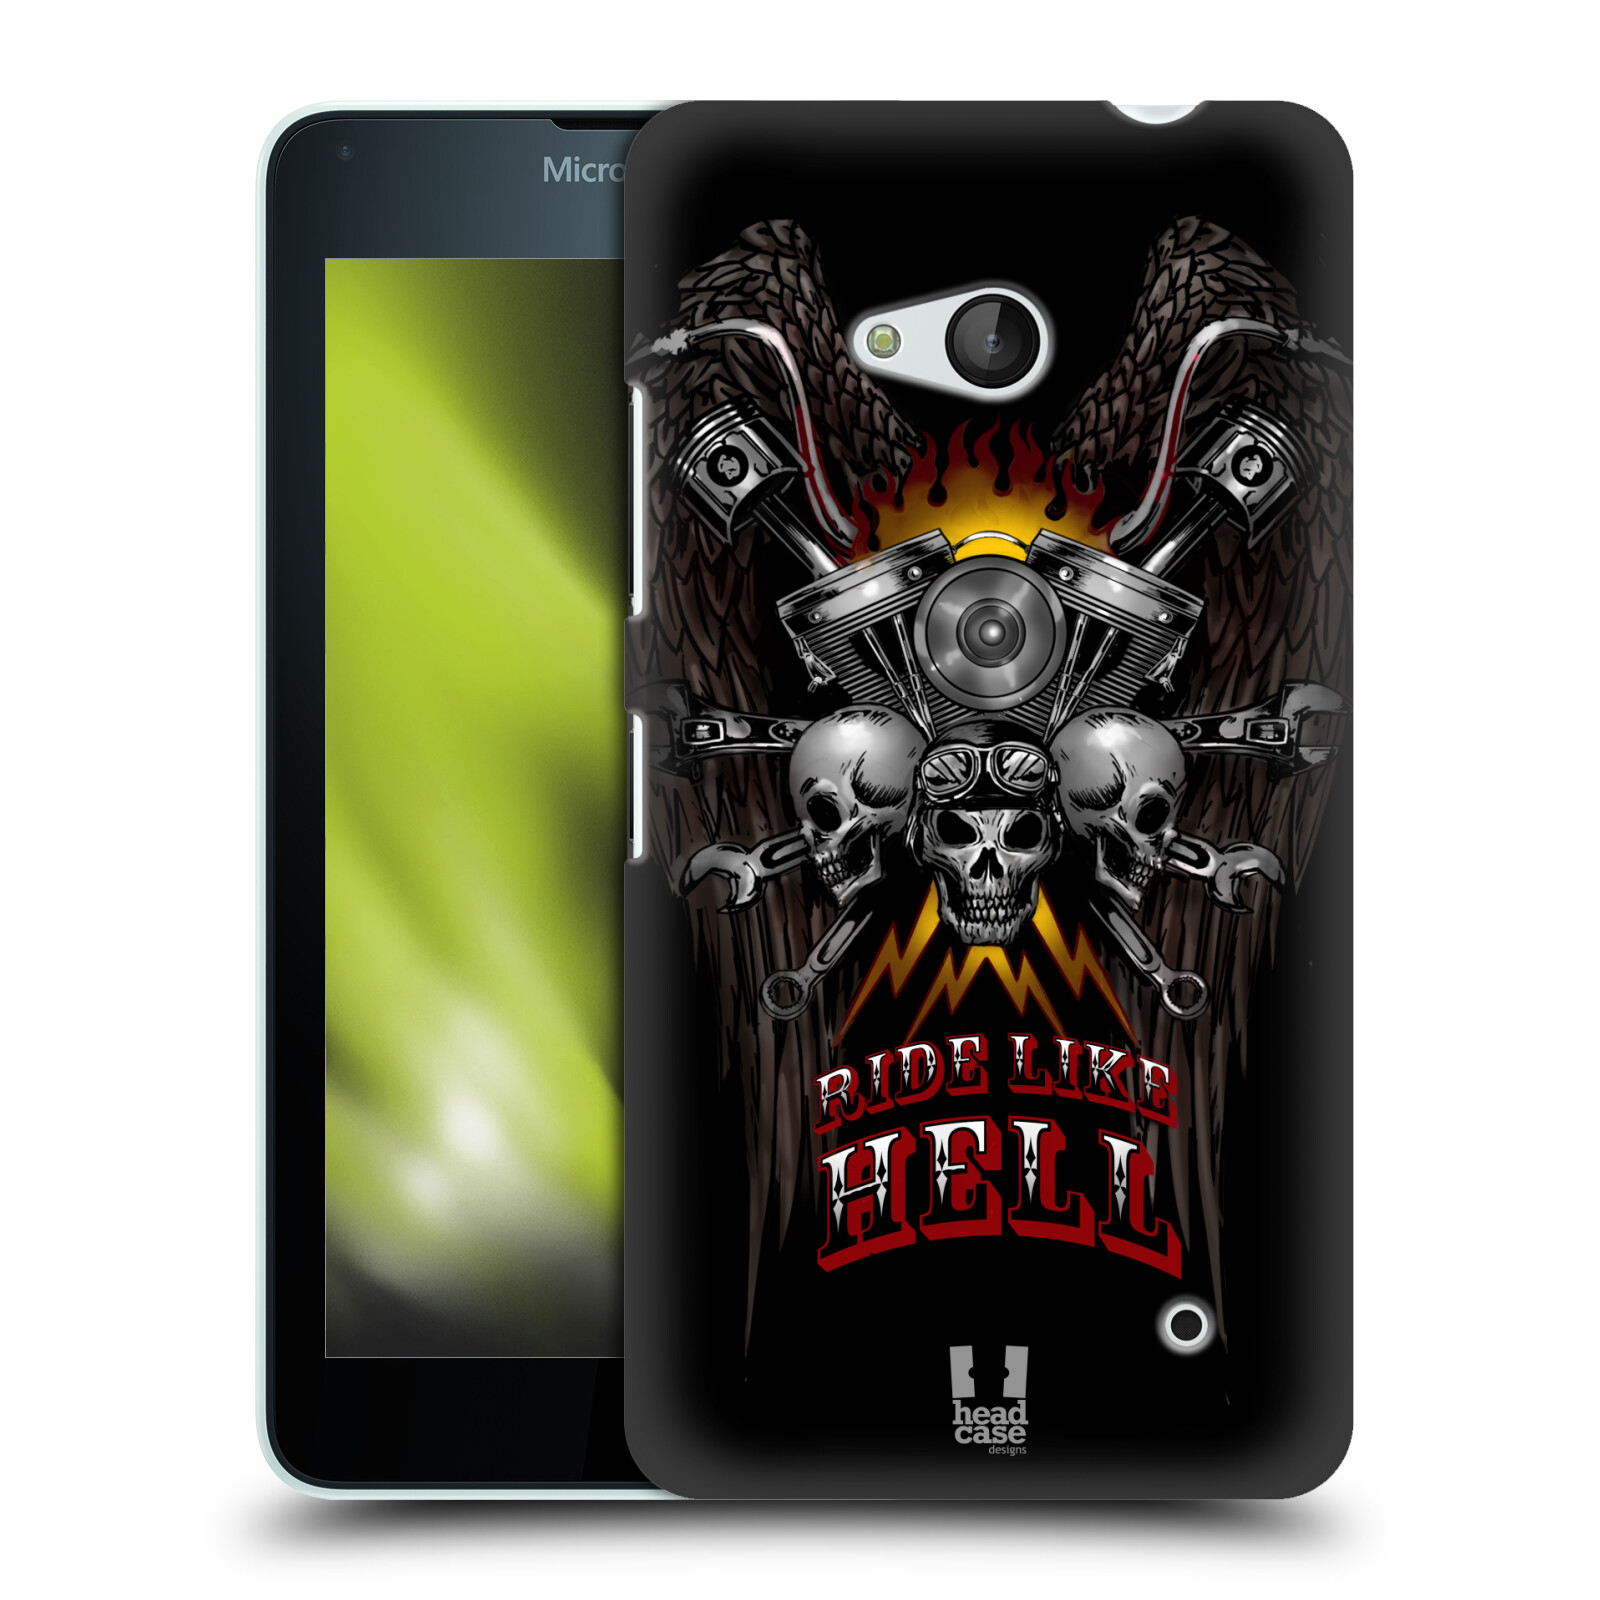 HEAD-CASE-DESIGNS-MOTARDS-DE-CRANE-ETUI-COQUE-D-039-ARRIERE-POUR-NOKIA-TELEPHONES-1